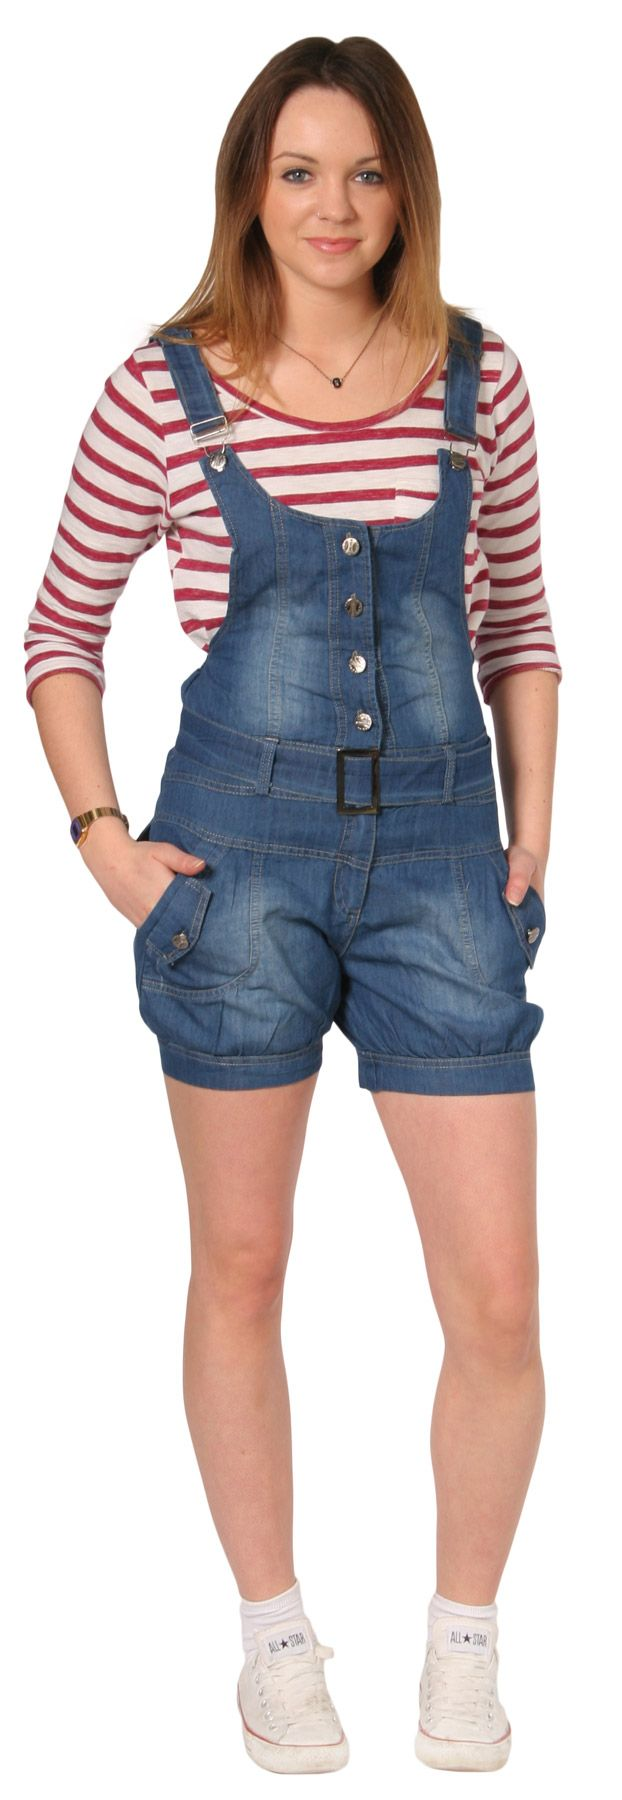 denim short dungarees from Dungarees-online #dungareespecialists #summer #musicfestival